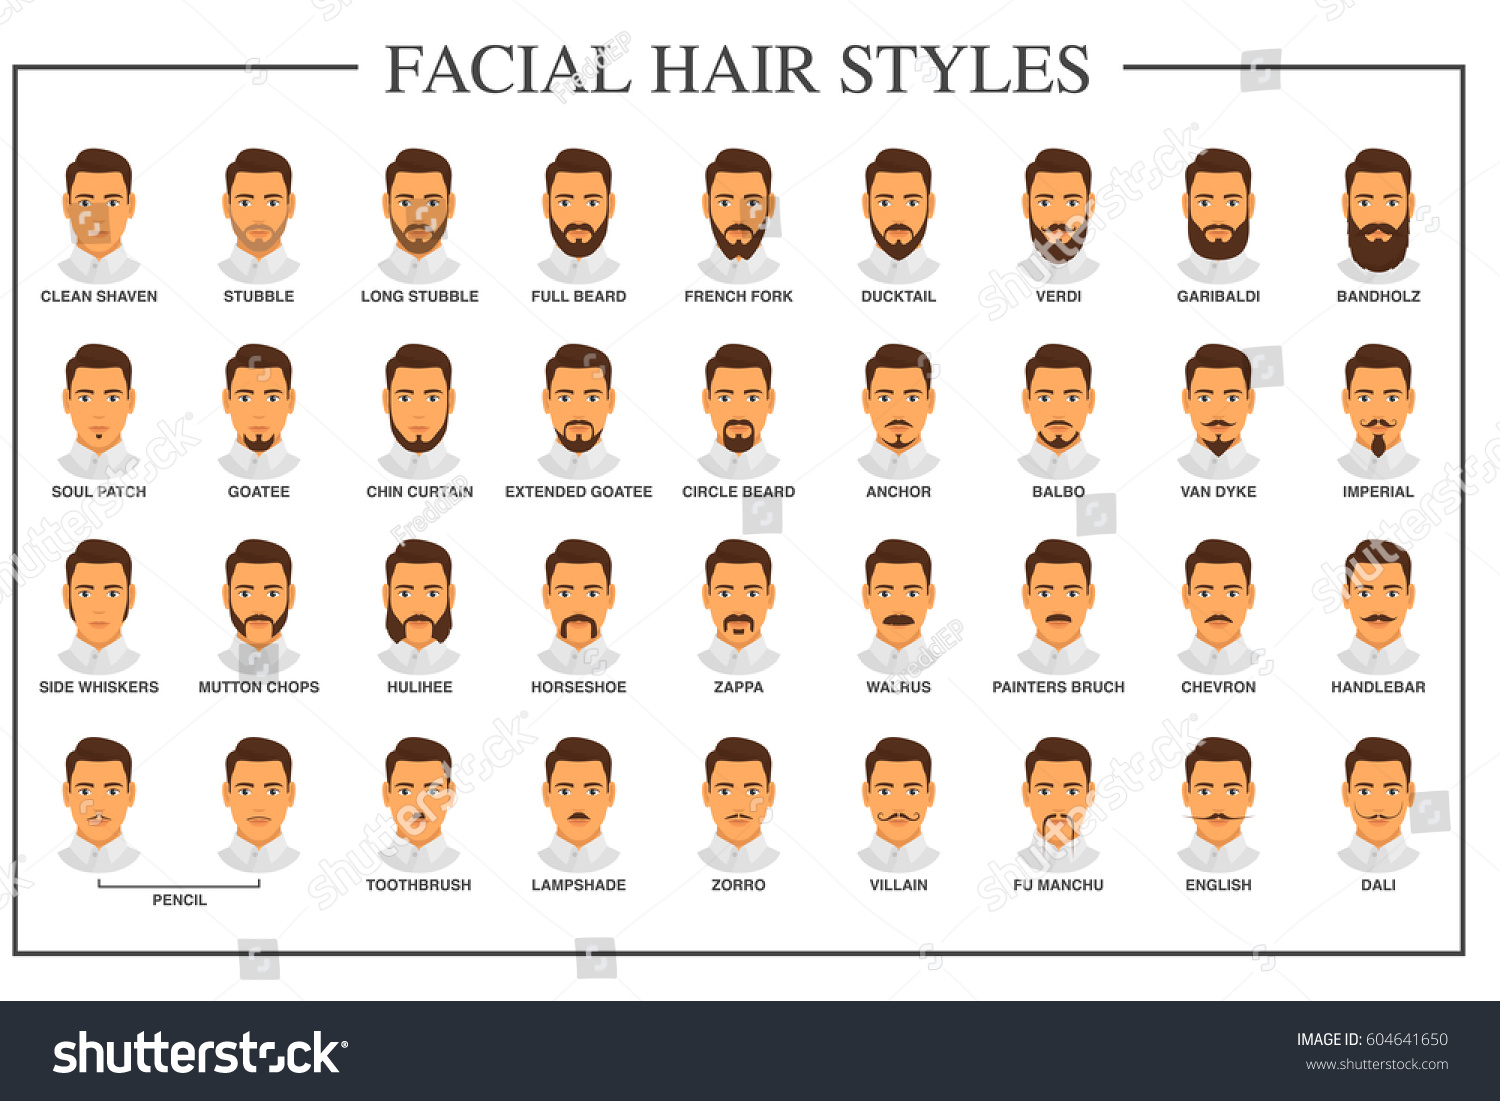 different styles of facial hair with pictures beard styles guide hair types stock vector 4336 | stock vector beard styles guide facial hair types vector illustration on white background mustache and beard 604641650